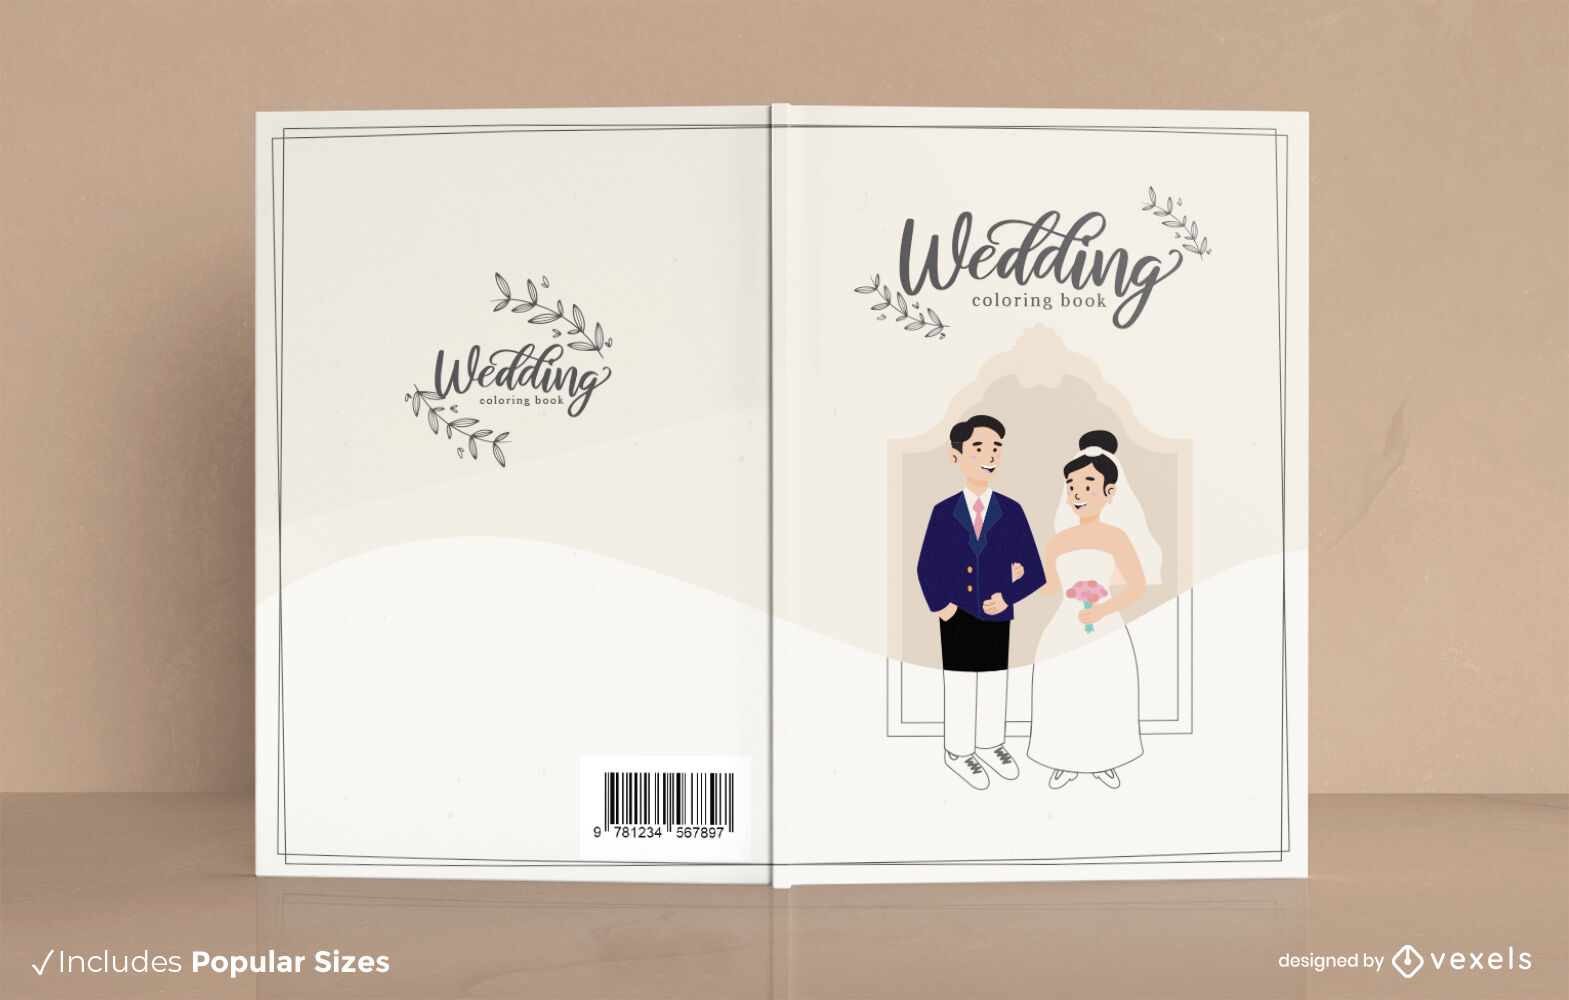 Wedding groom and bride book cover design